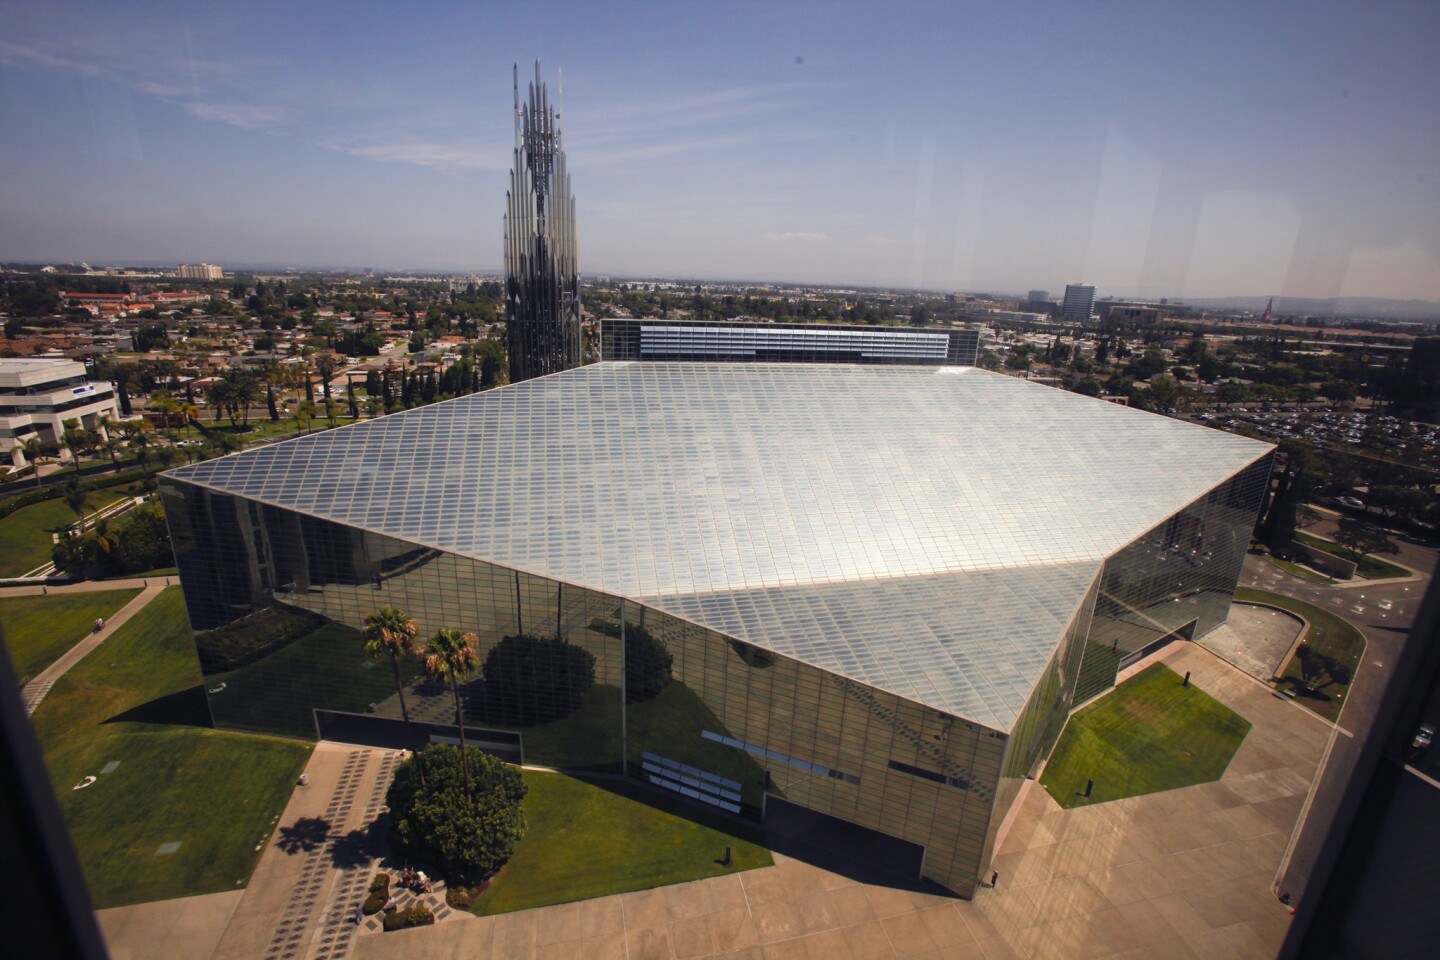 The former Crystal Cathedral in Garden Grove is being transformed into the Christ Cathedral by the Roman Catholic Diocese of Orange. The 415-foot-long cathedral, designed by famed architect Philip Johnson, is covered by about 10,000 windows and will eventually be retrofitted on the inside to accommodate traditional Catholic Church layout and rituals.